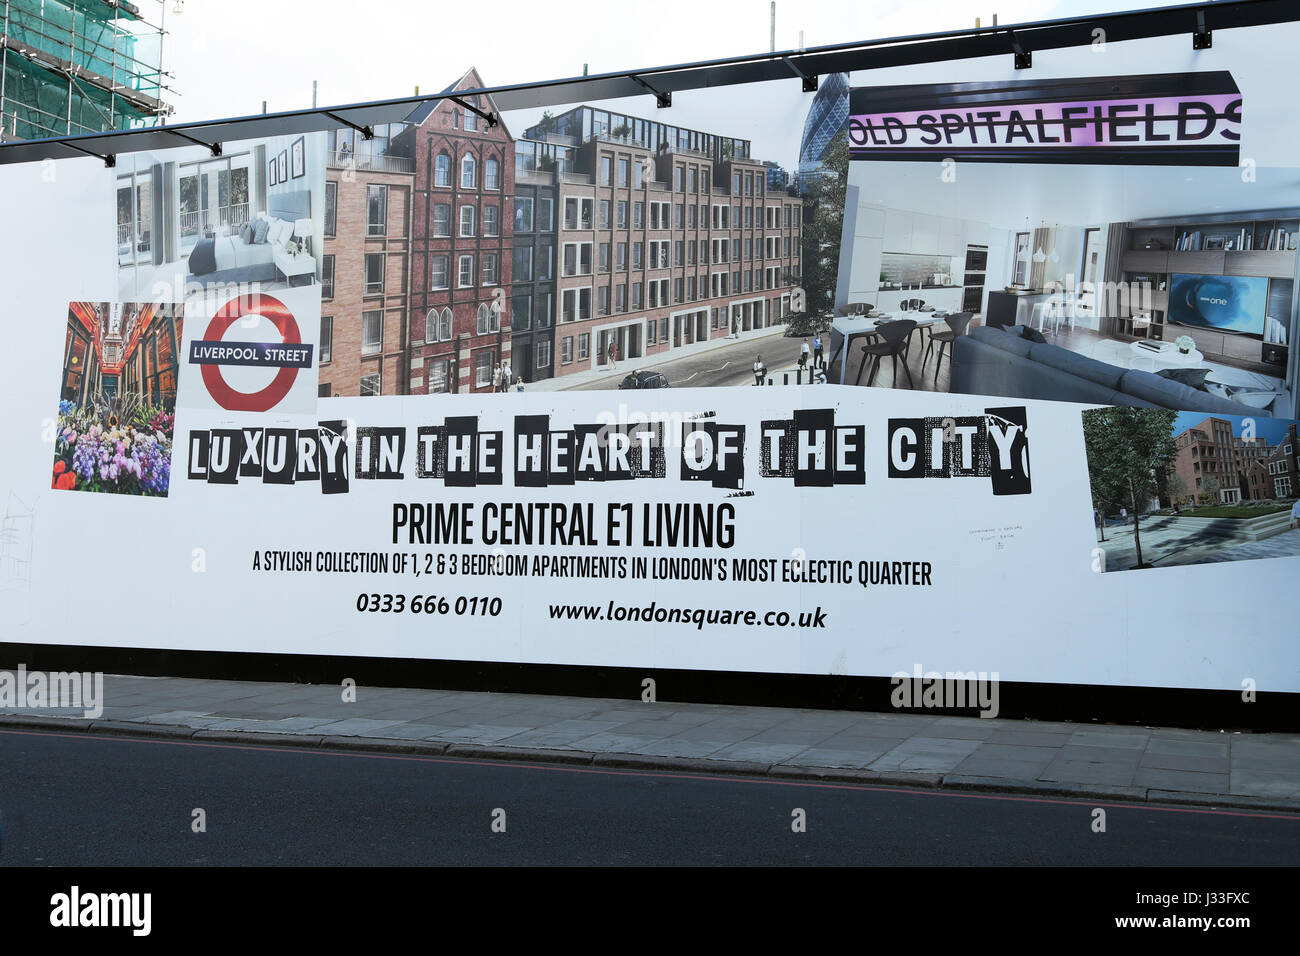 Property advert hoarding advertising luxury living apartments near the Spitalfields Tower Hamlets area of the East - Stock Image